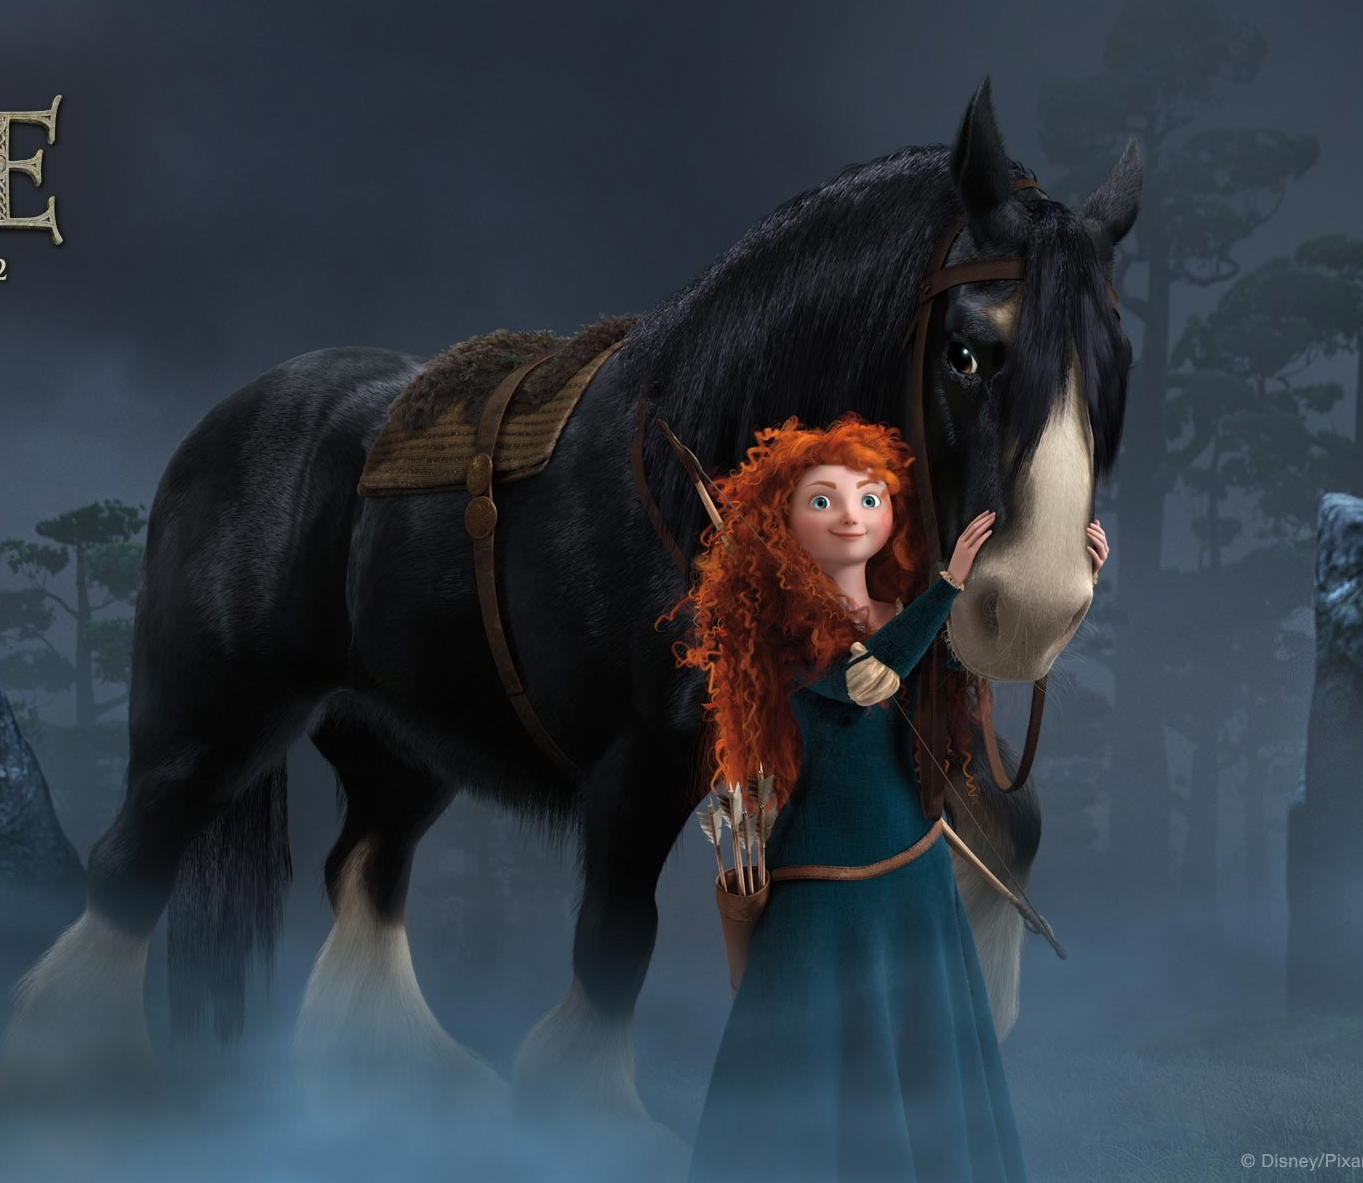 Princess Merida Brave Wallpaper Free For Desktop  - princess merida in brave wallpapers